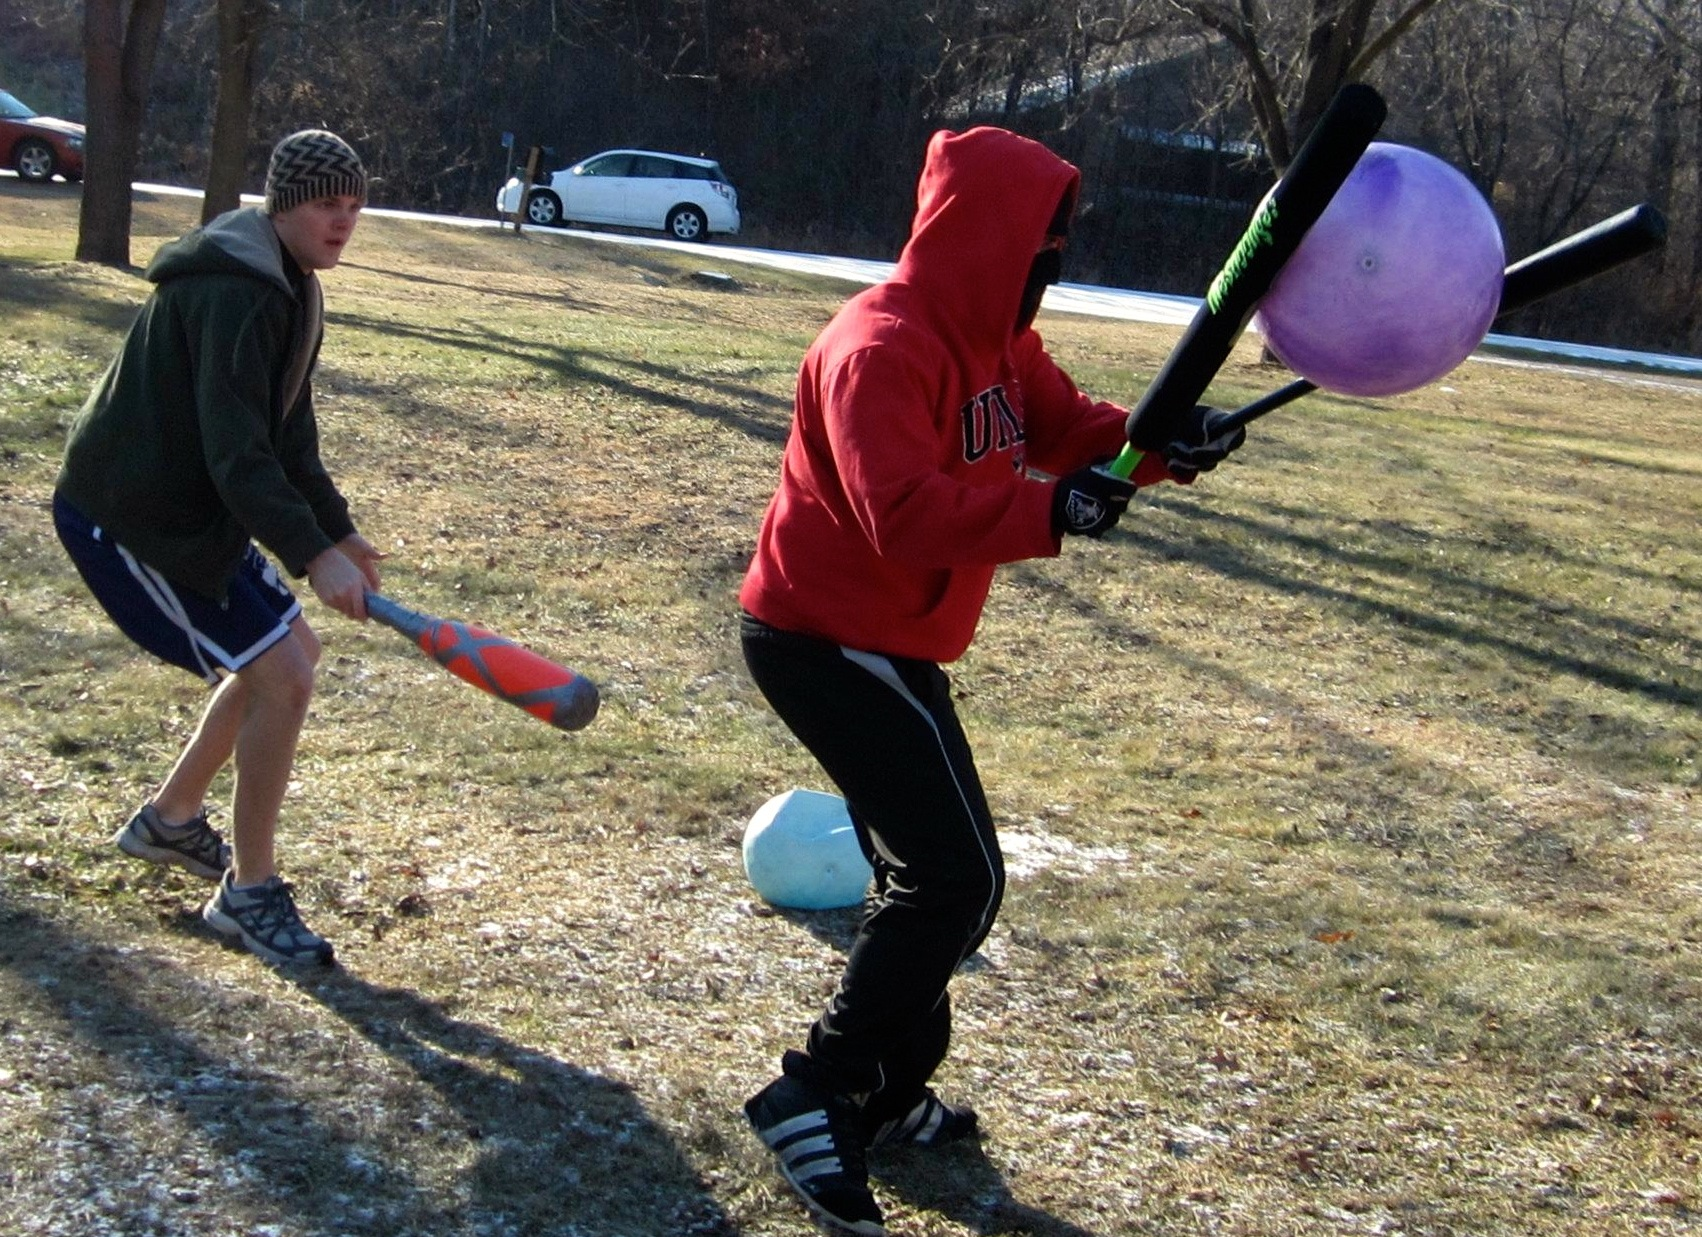 Obscure games, obscure sports, dodgeball with bats. Eric Franzen and Michael Polzin.